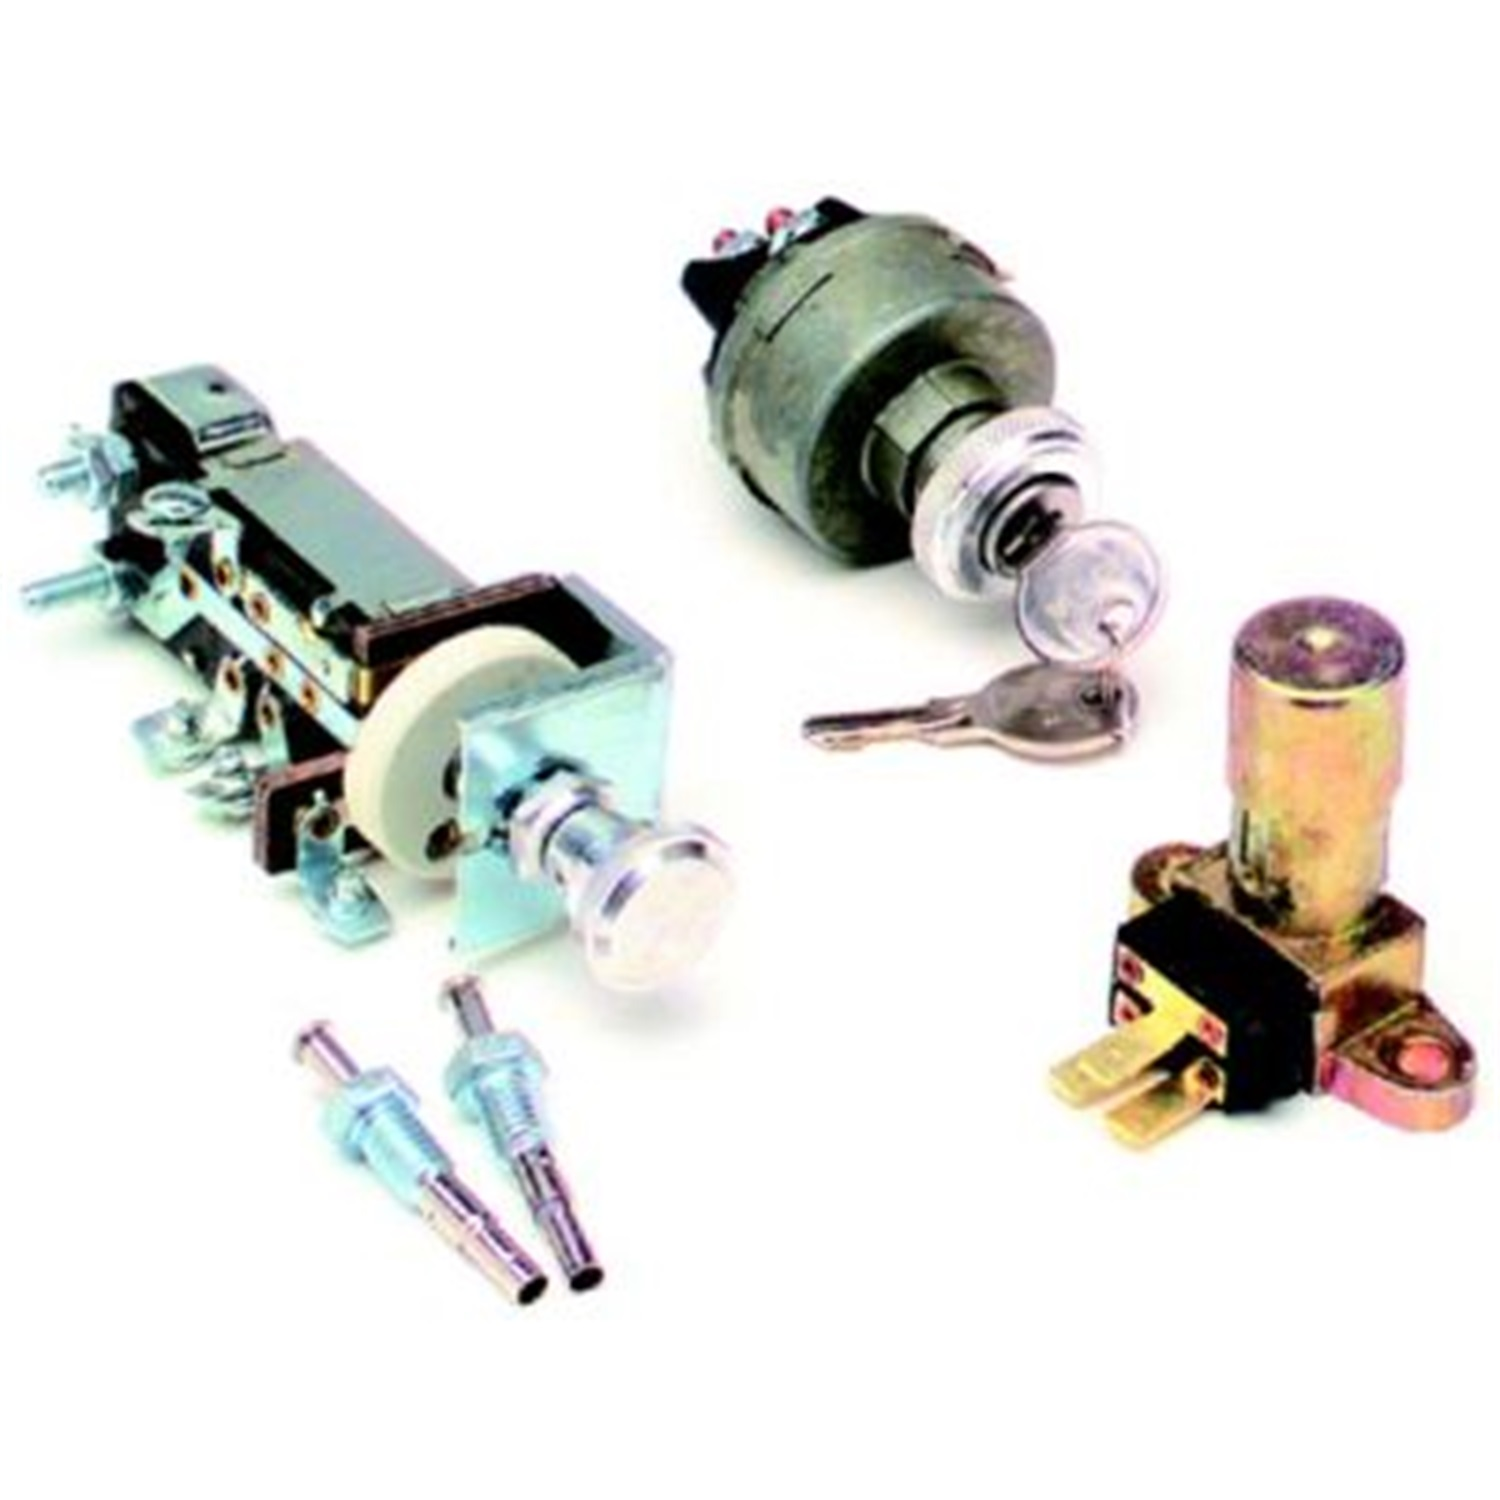 1985 chevy truck ignition switch wiring diagram supra 2jz gte painless 63 nova harness best librarypainless 80121 head light door jamb dimmer kit